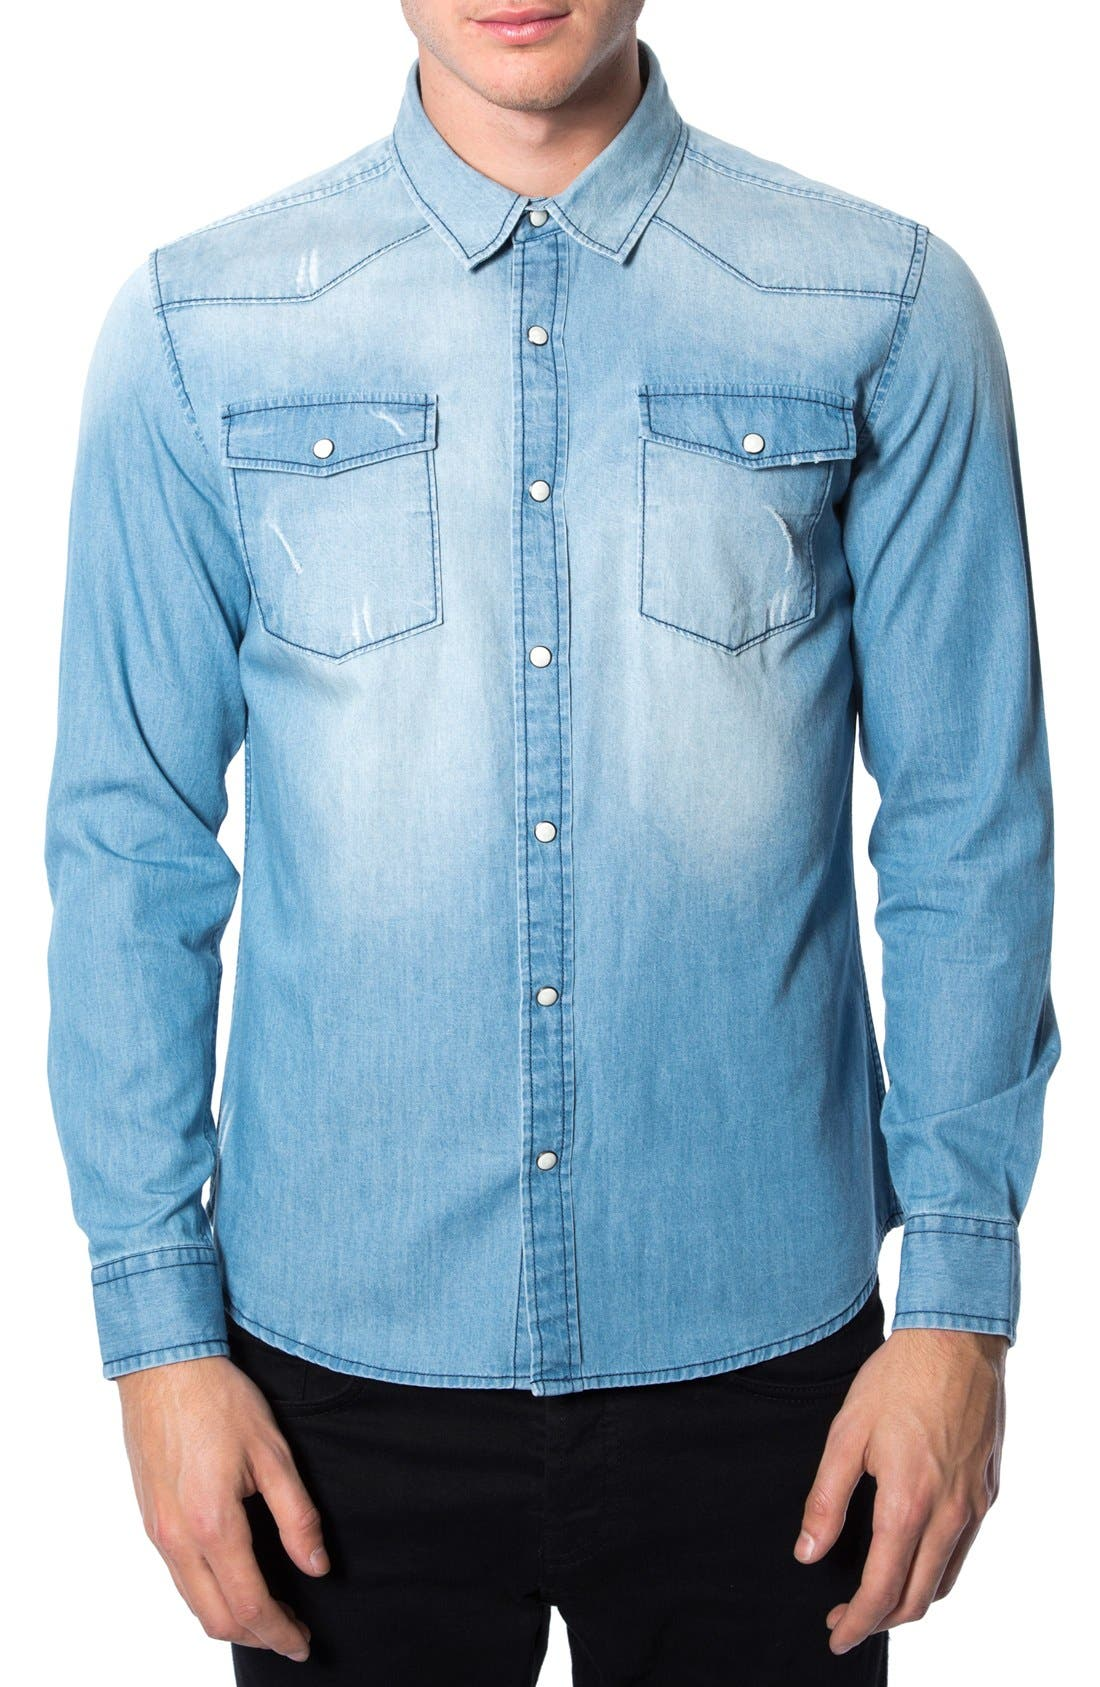 7 Diamonds 'Beyond Me' Trim Fit Chambray Shirt